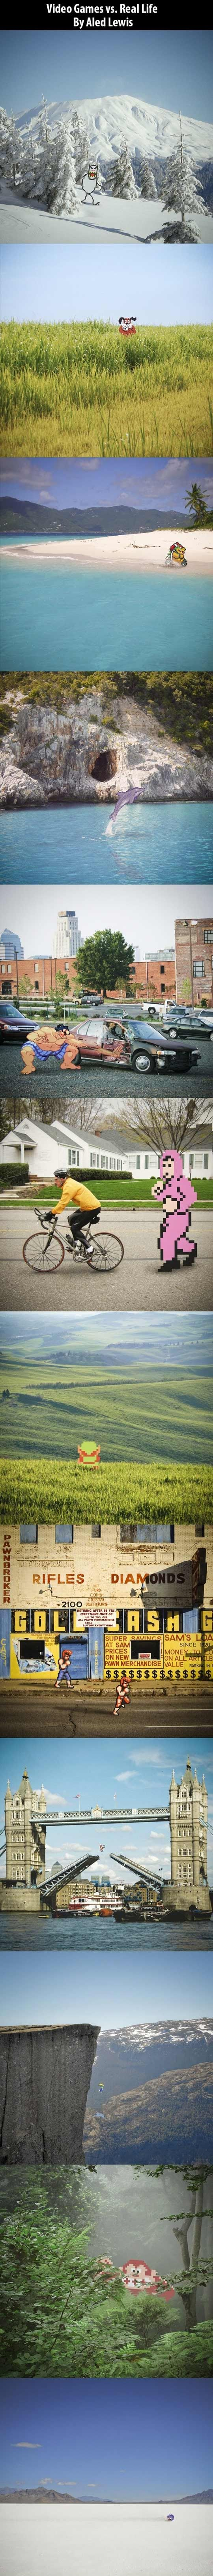 Video games vs. Real life.